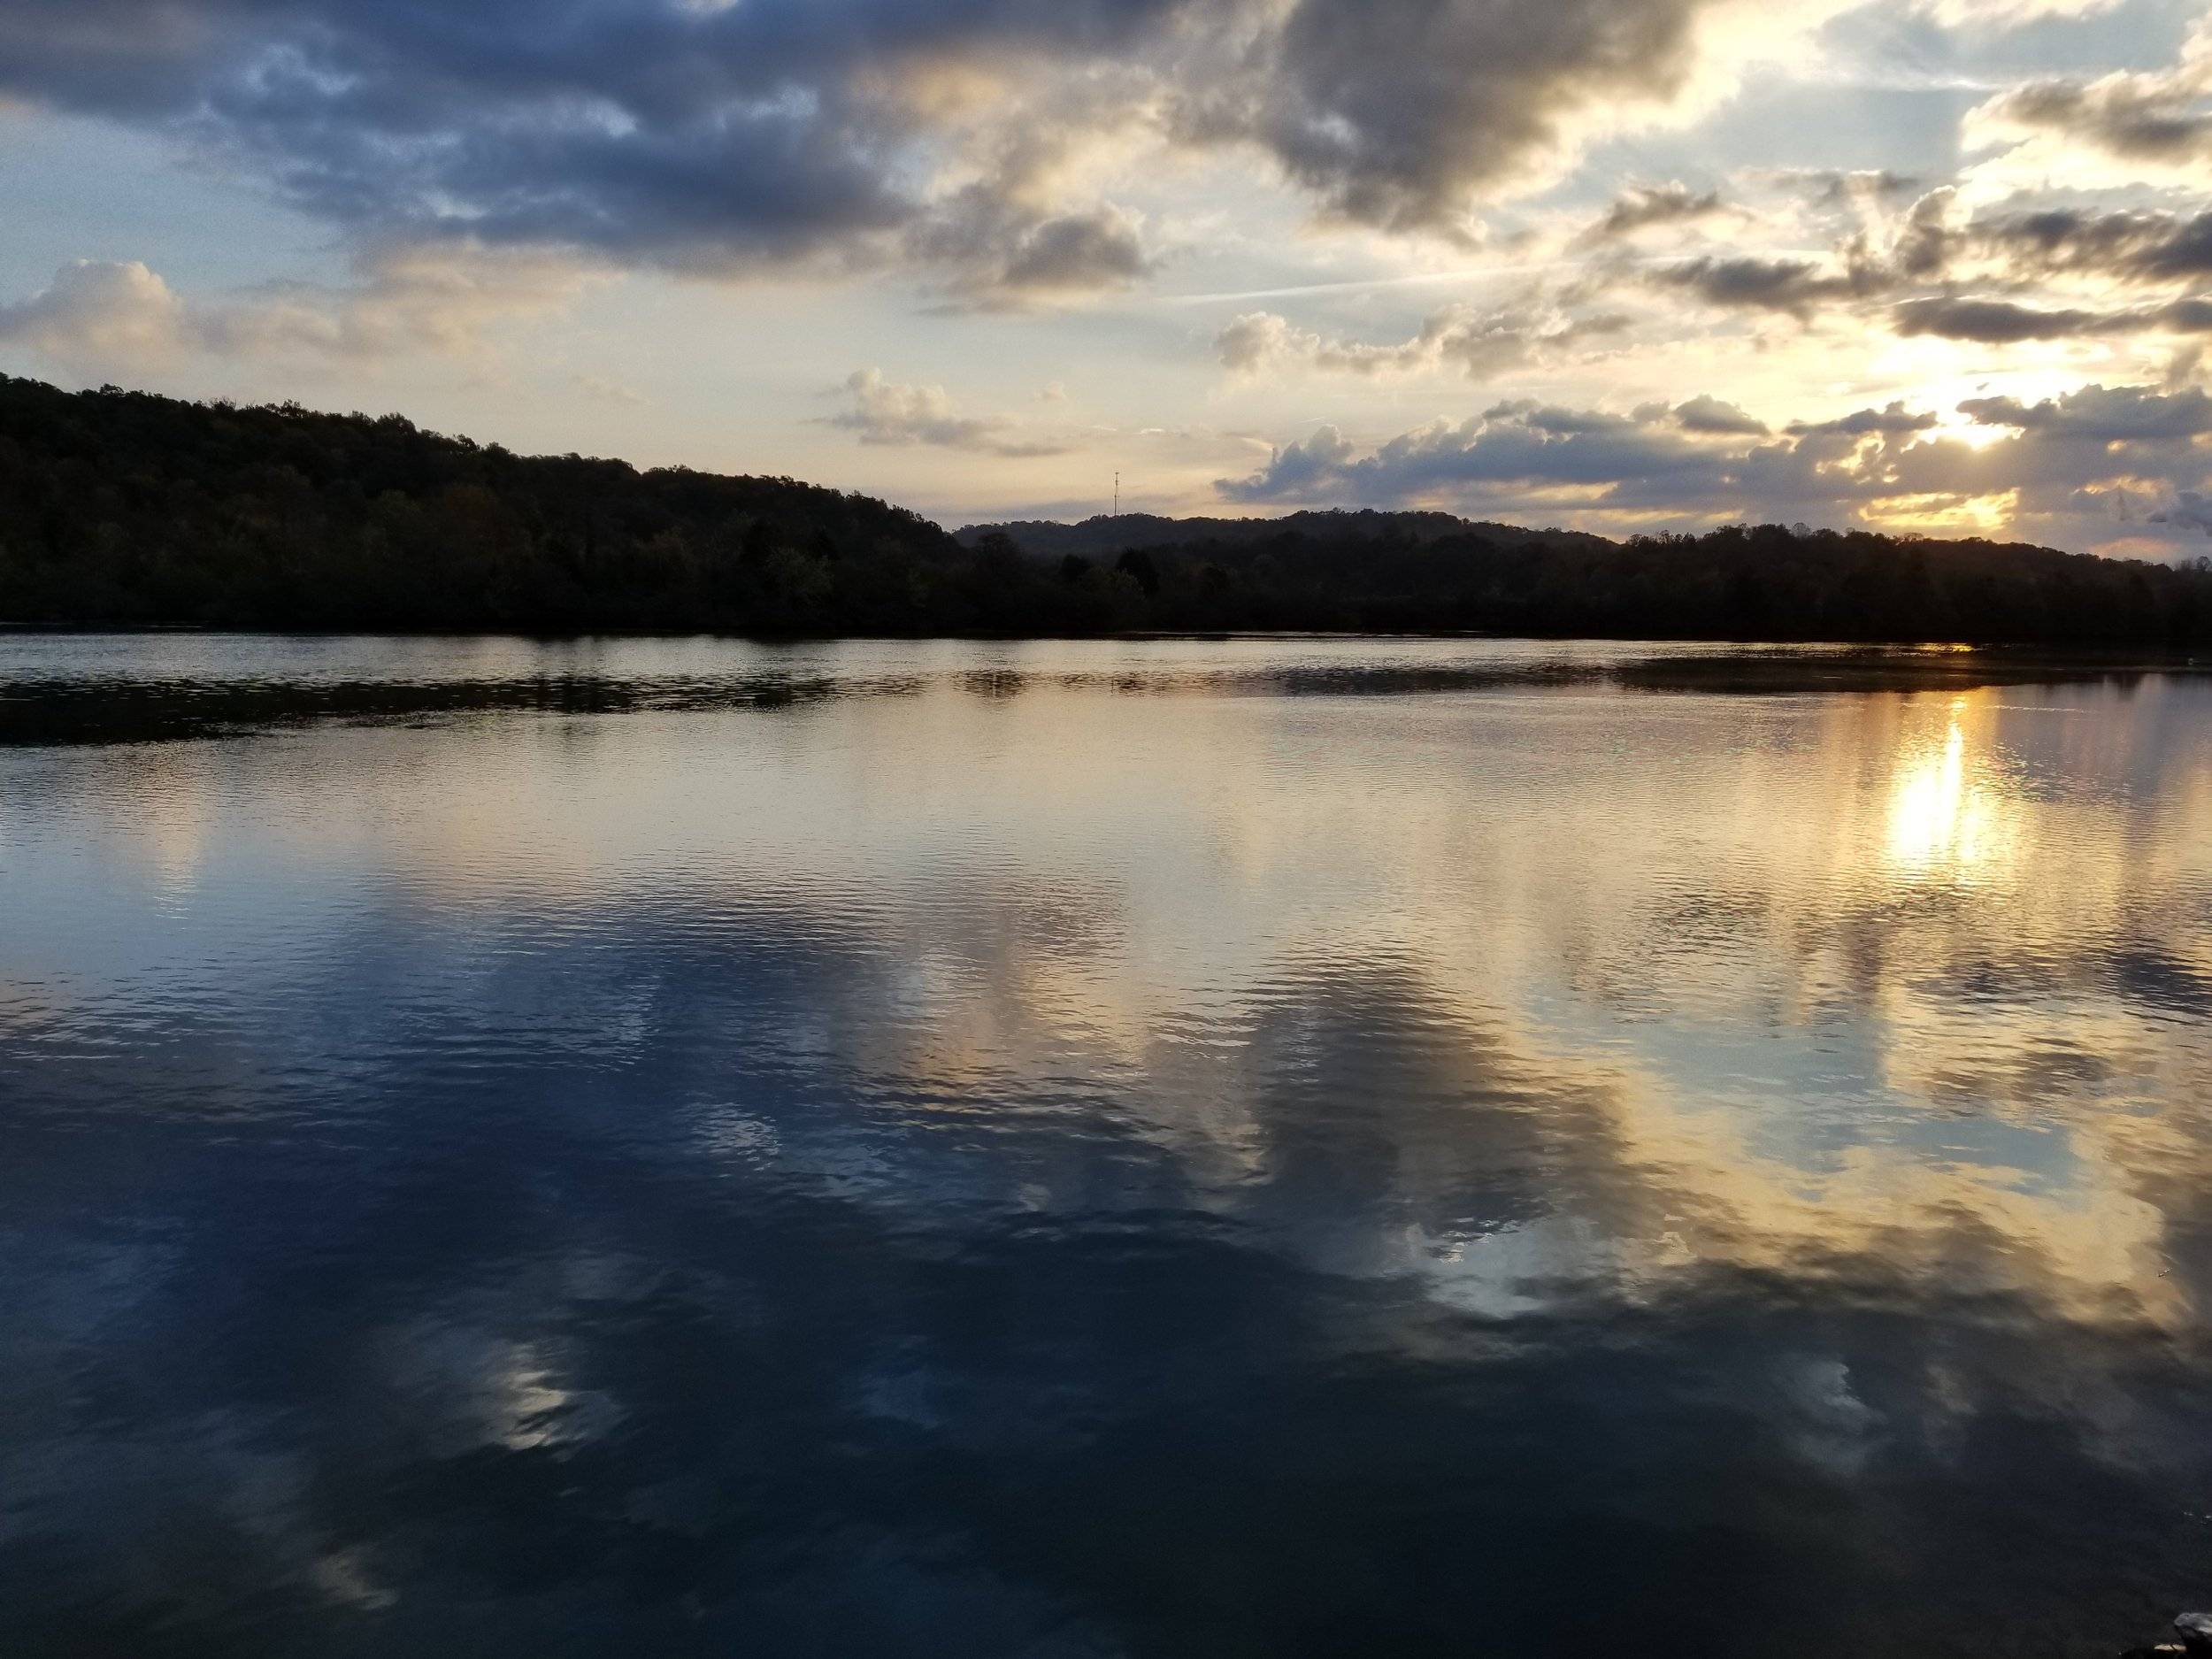 Sunrise at Melton Hill Lake Park